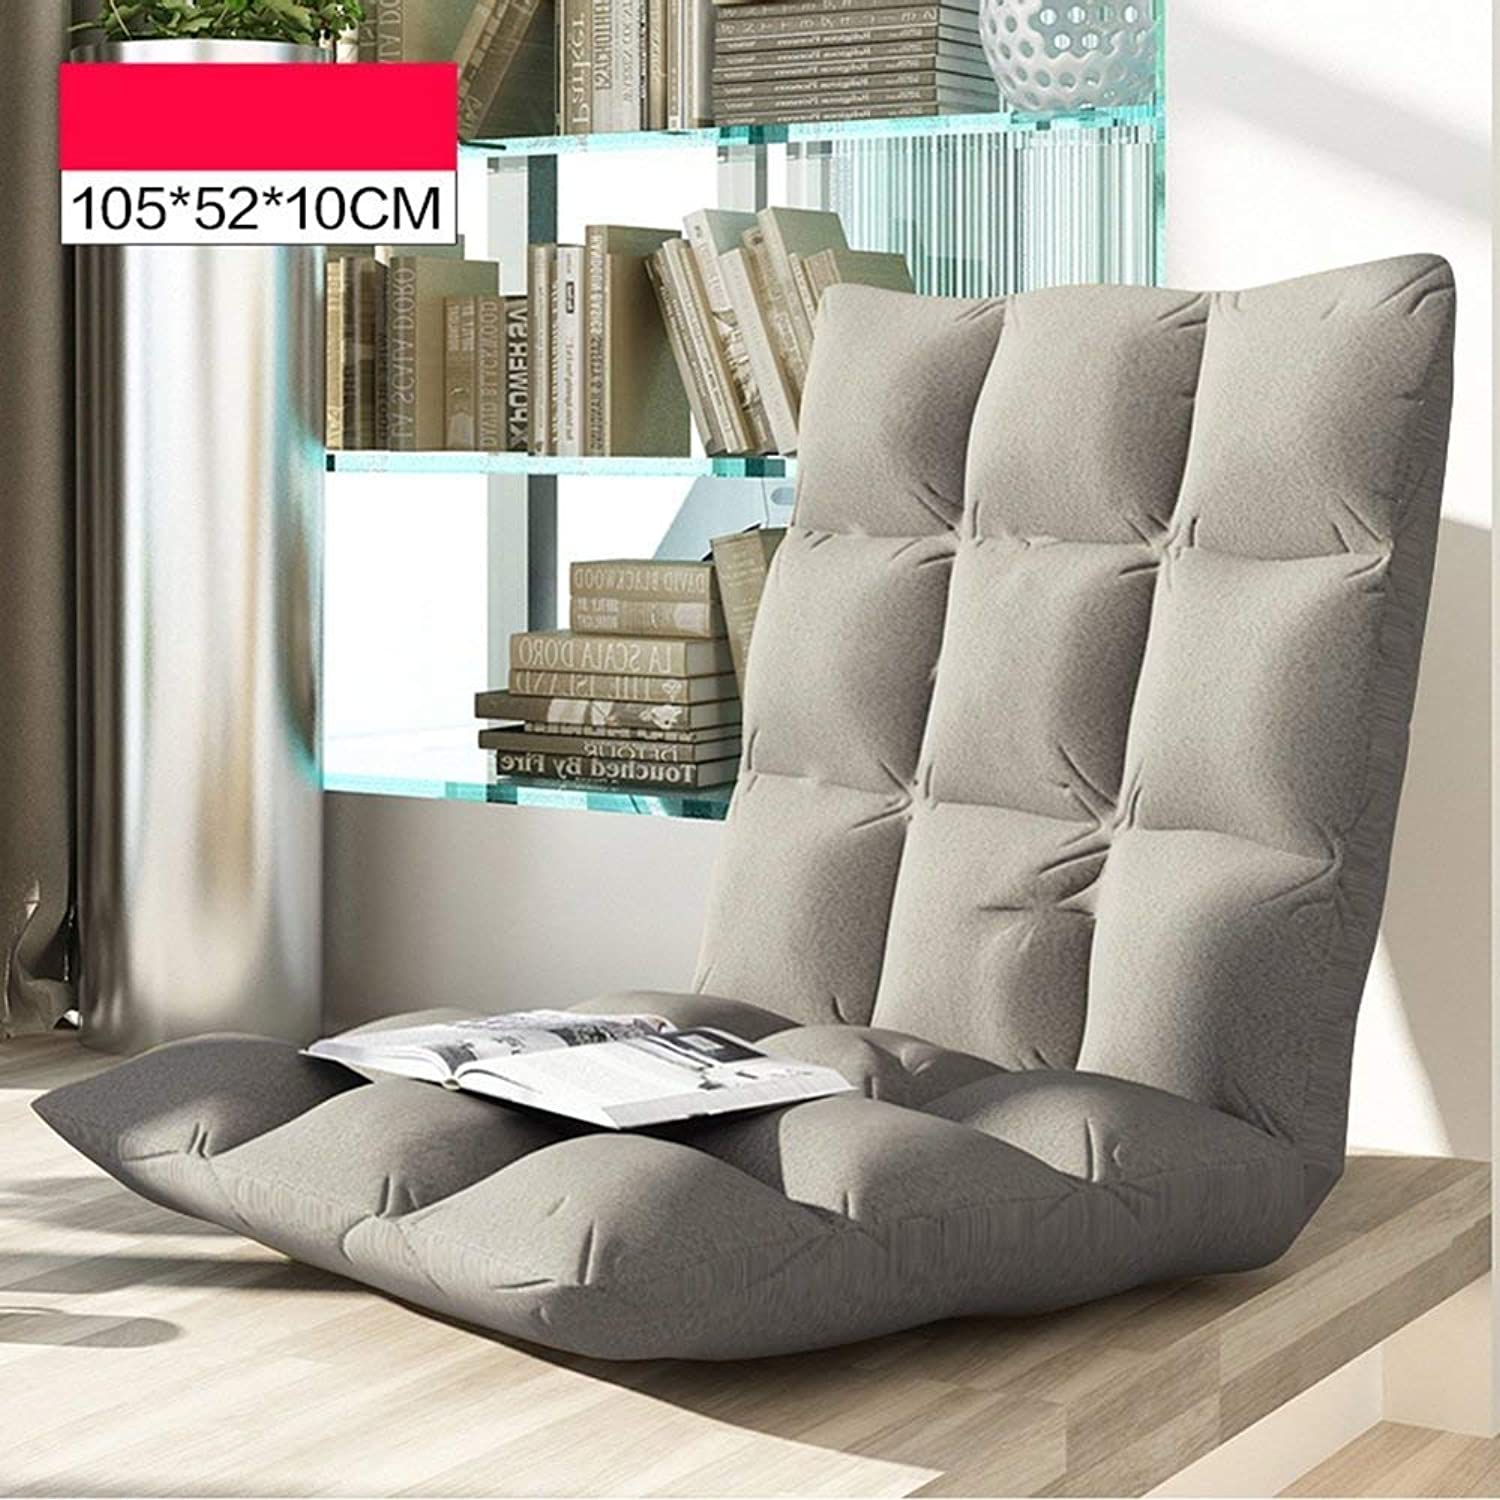 Lazy Sofa Cushion Folding Chair Bed Chair Bay Window Chair Lazy Couch (color  C, Size  105  52  10cm)